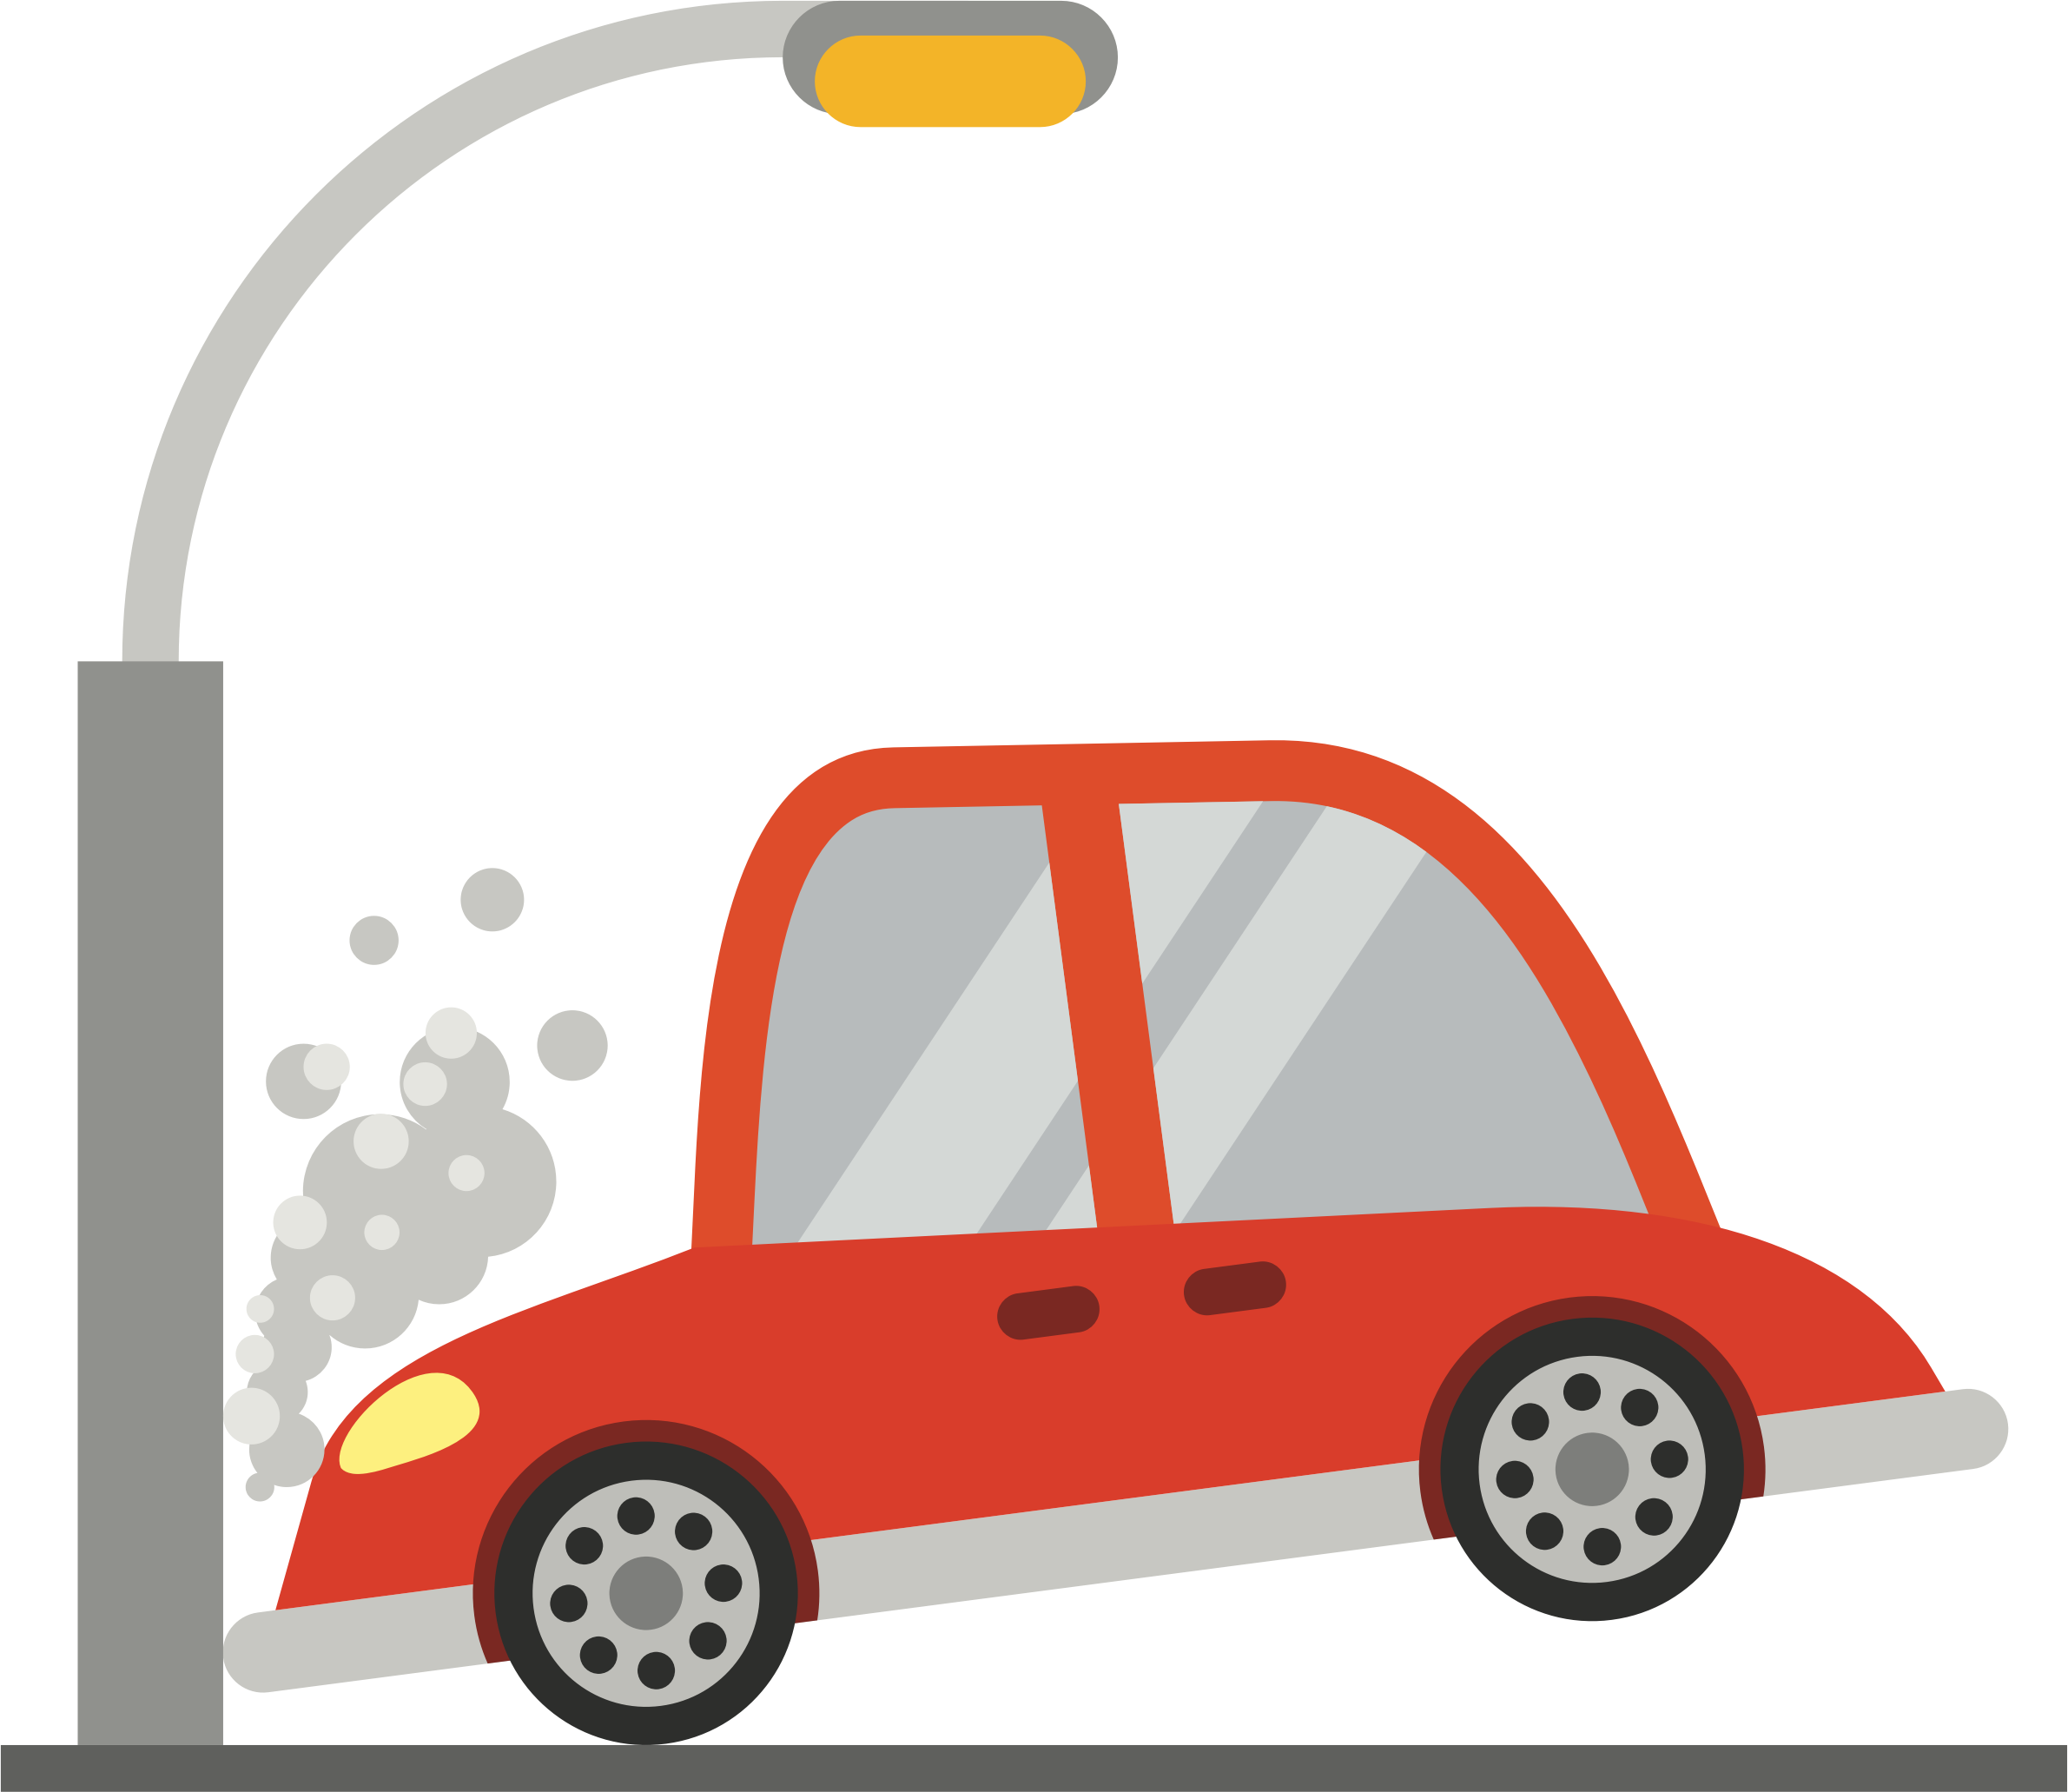 picture royalty free library Accident clipart. Motor vehicle big image